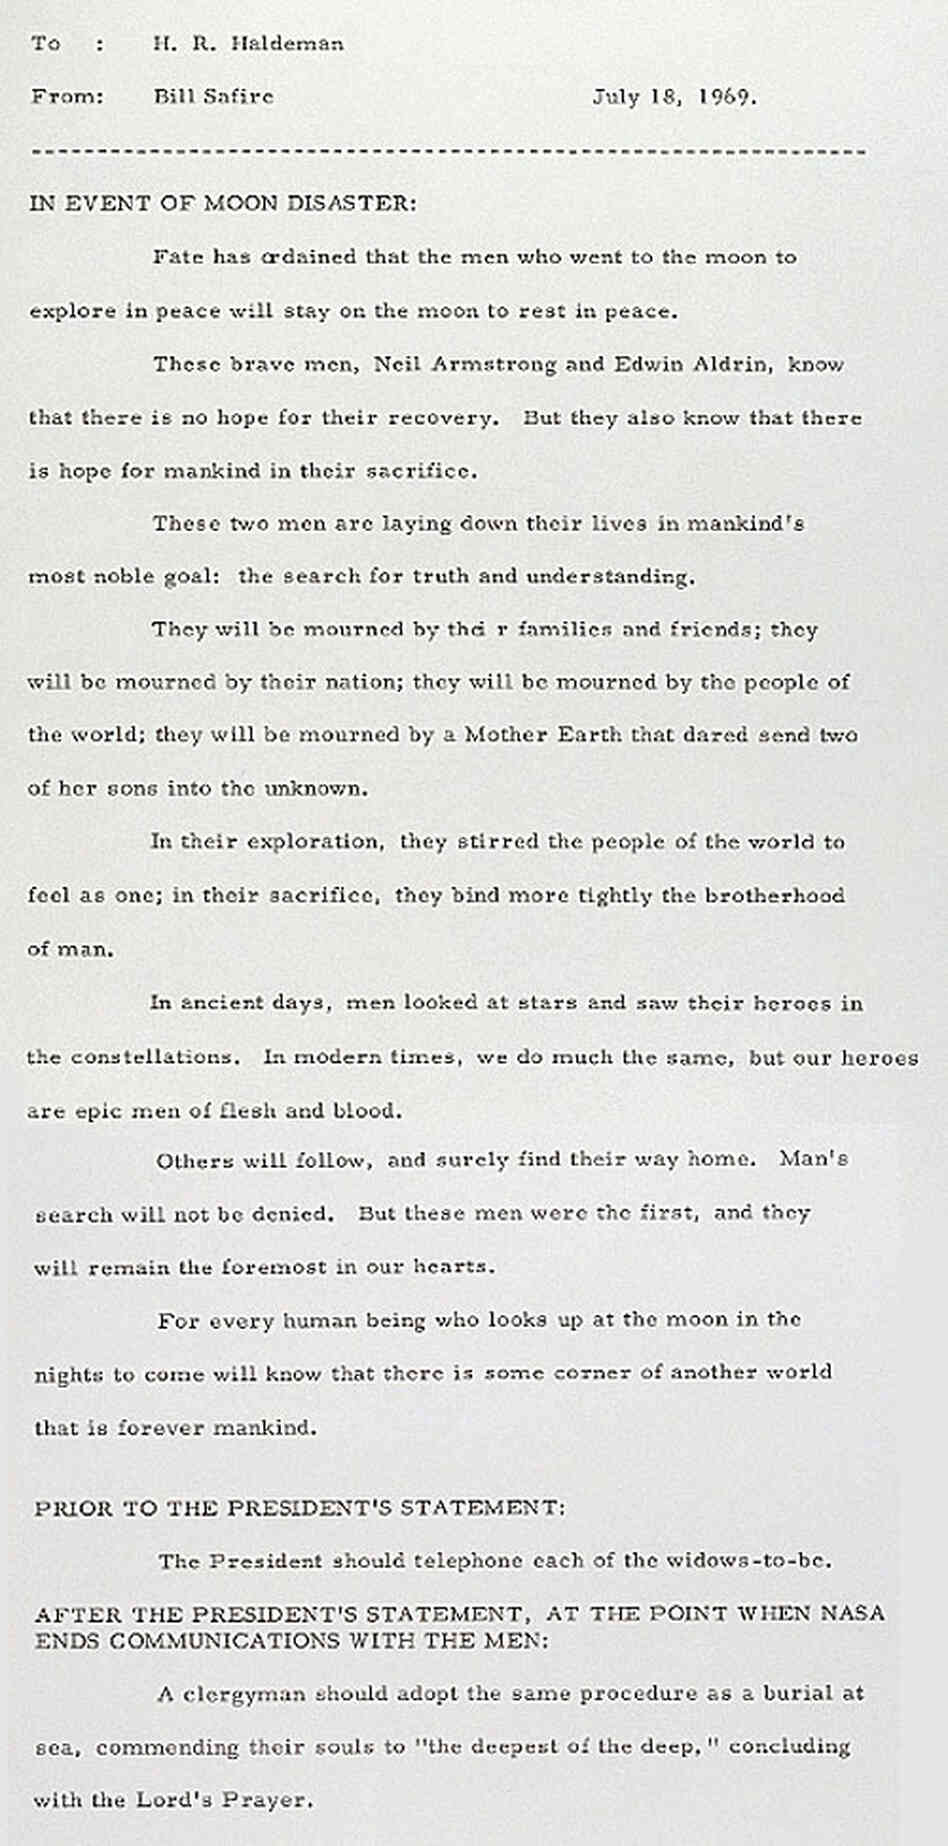 The Nixon White House prepared this letter in the event that American  astronauts did not survive the Apollo 11 mission.